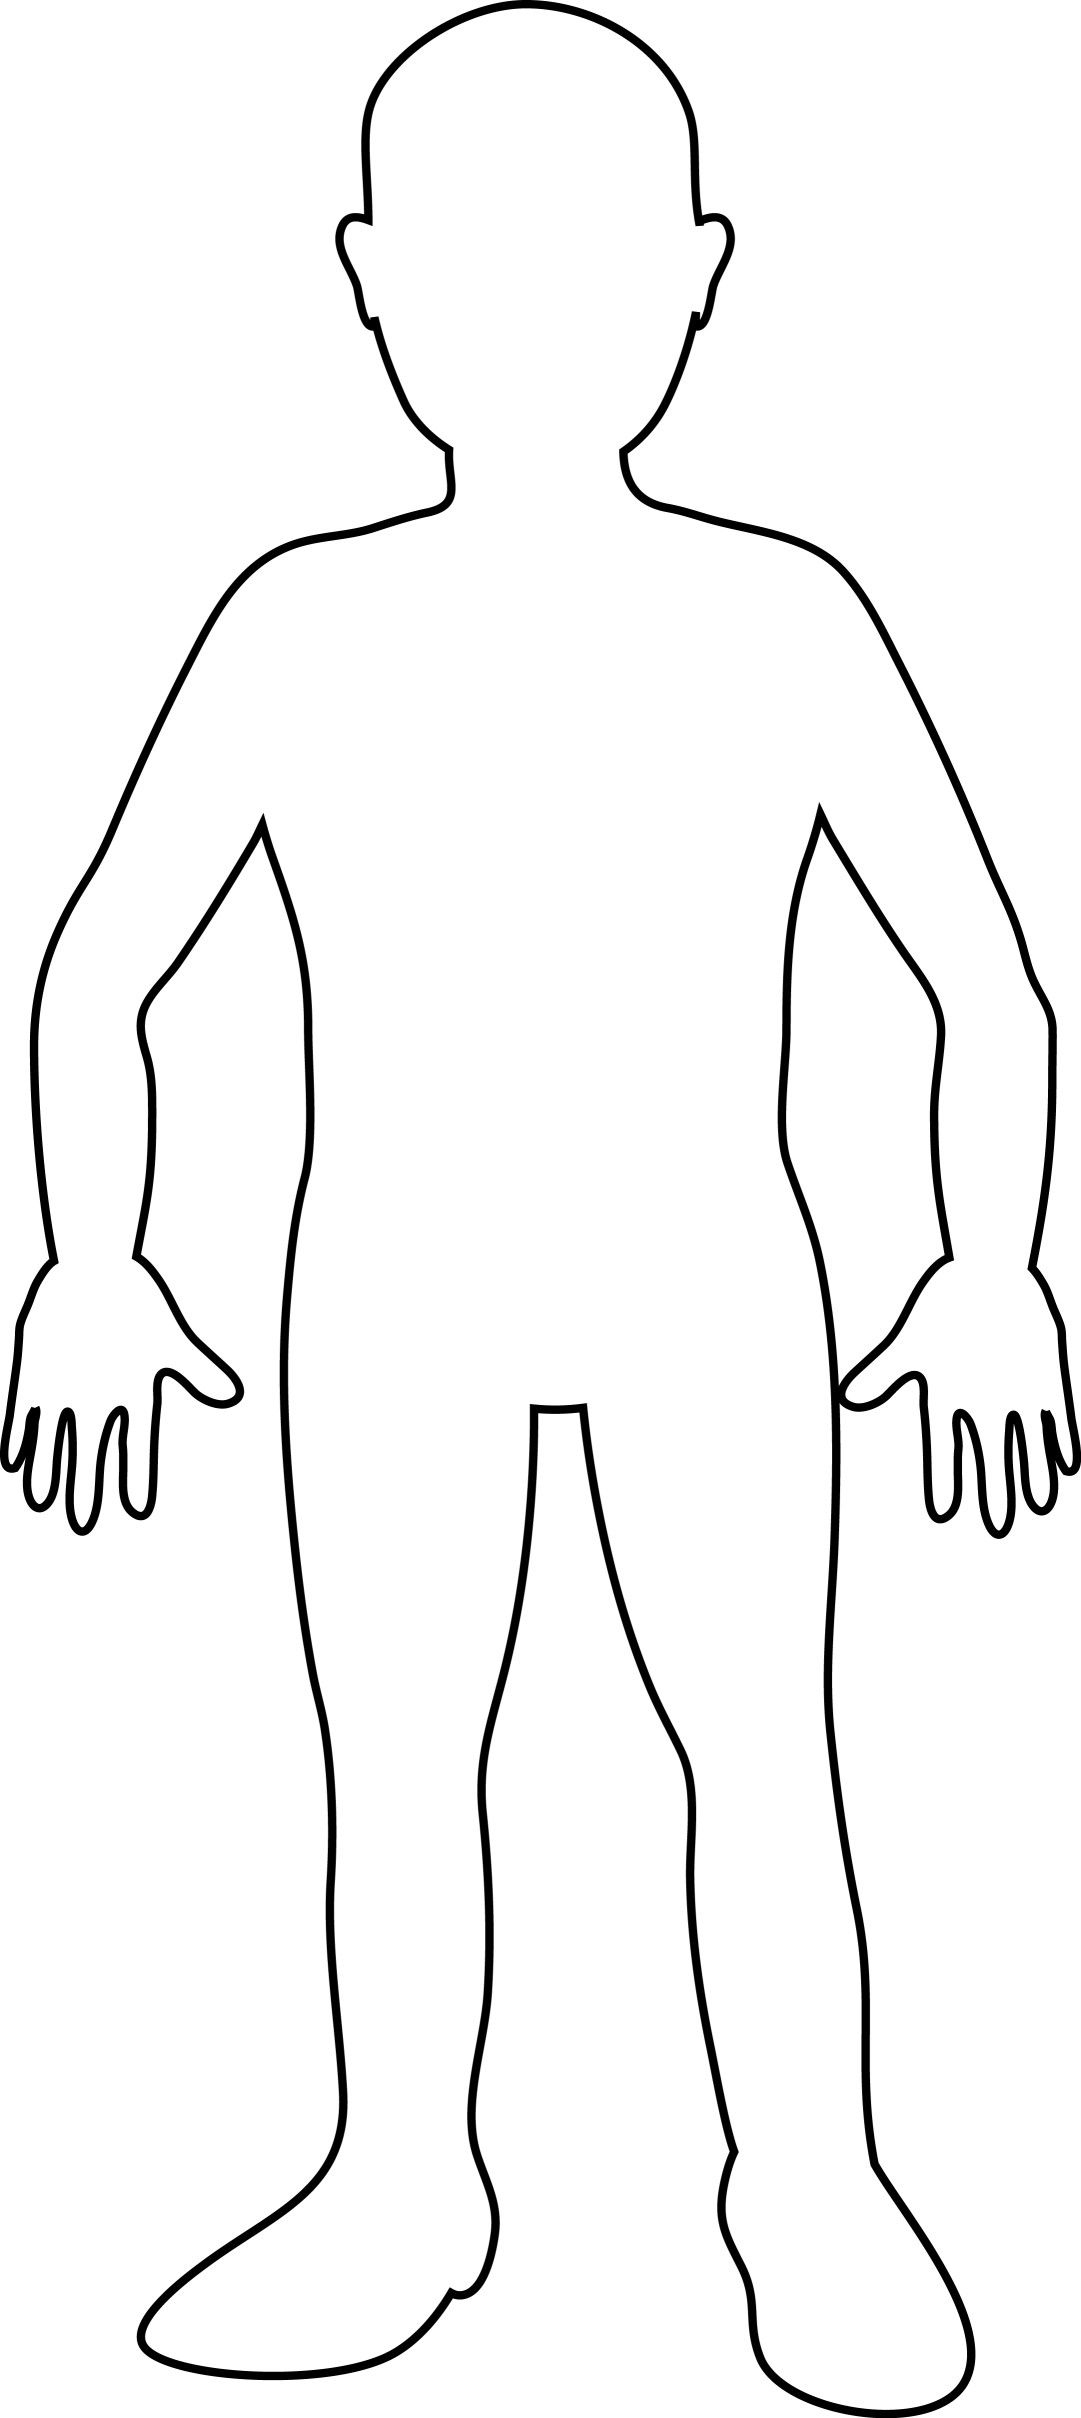 Human Body Outline For Kids And Adult | Трафареты | Human Body, Body - Free Printable Human Body Template